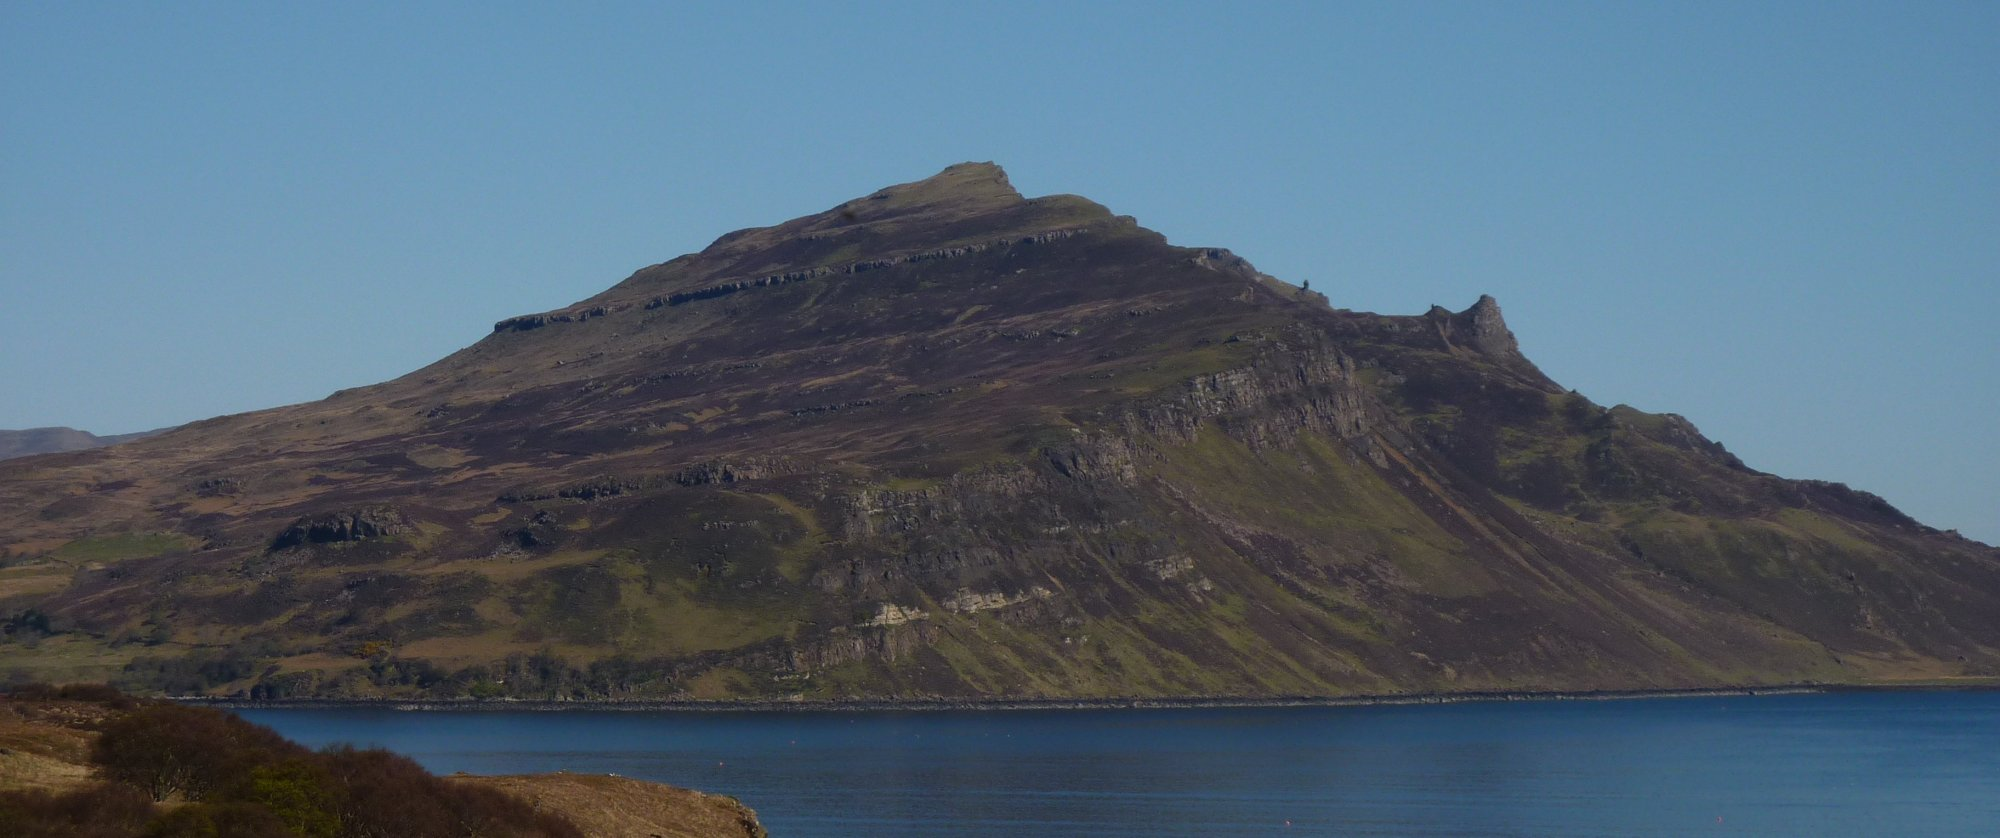 Looking across Tianavaig Bay to Ben Tianavaig from the Braes road